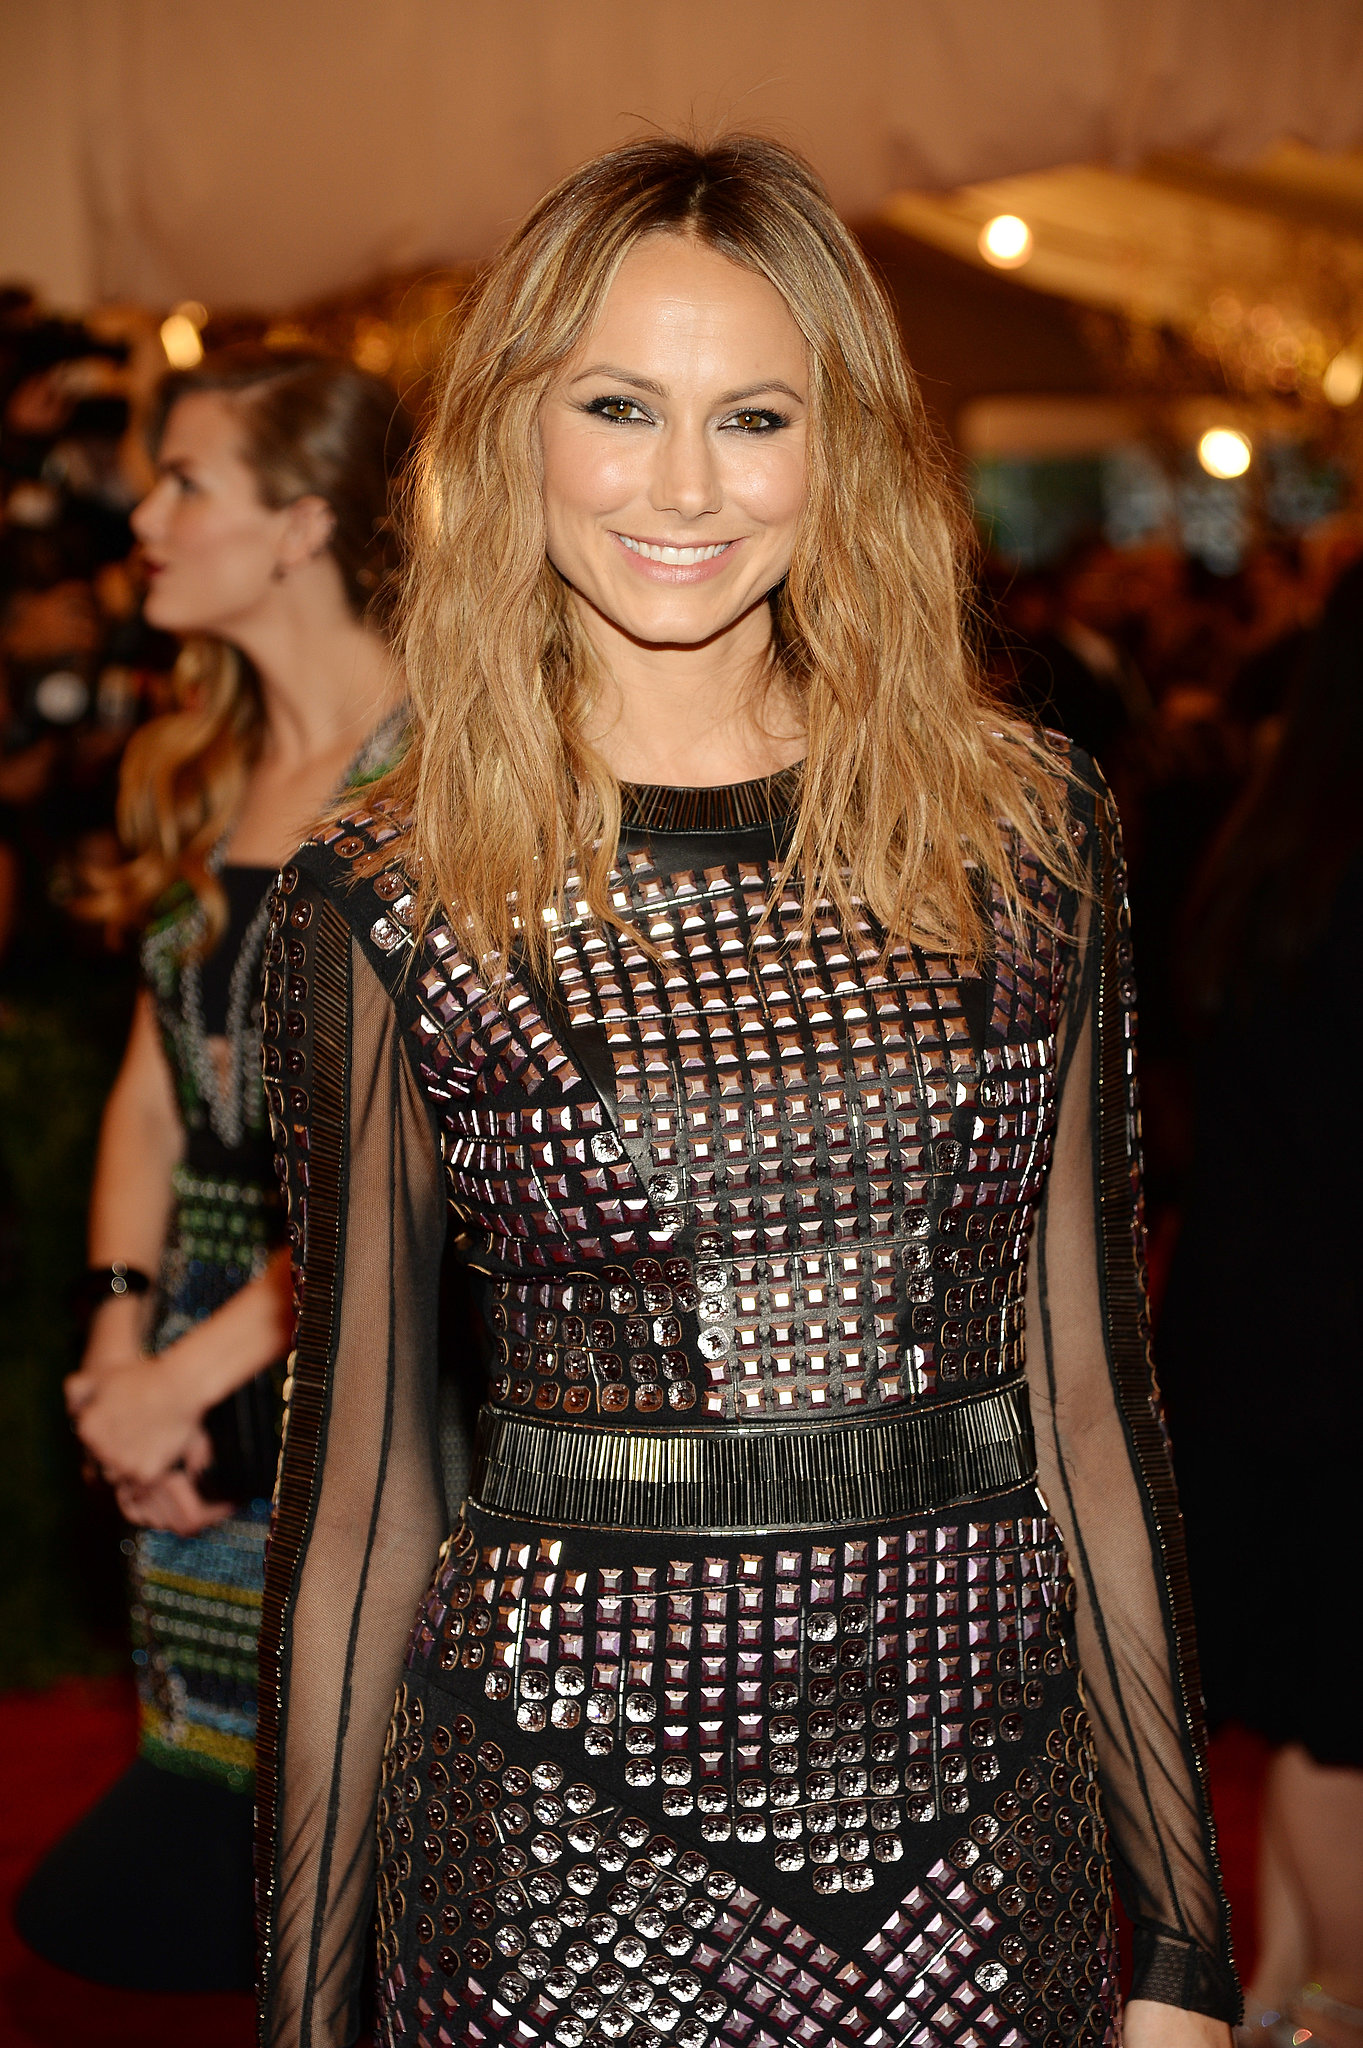 Beachy bedhead was a great look on Stacy Keibler at the Met Gala.